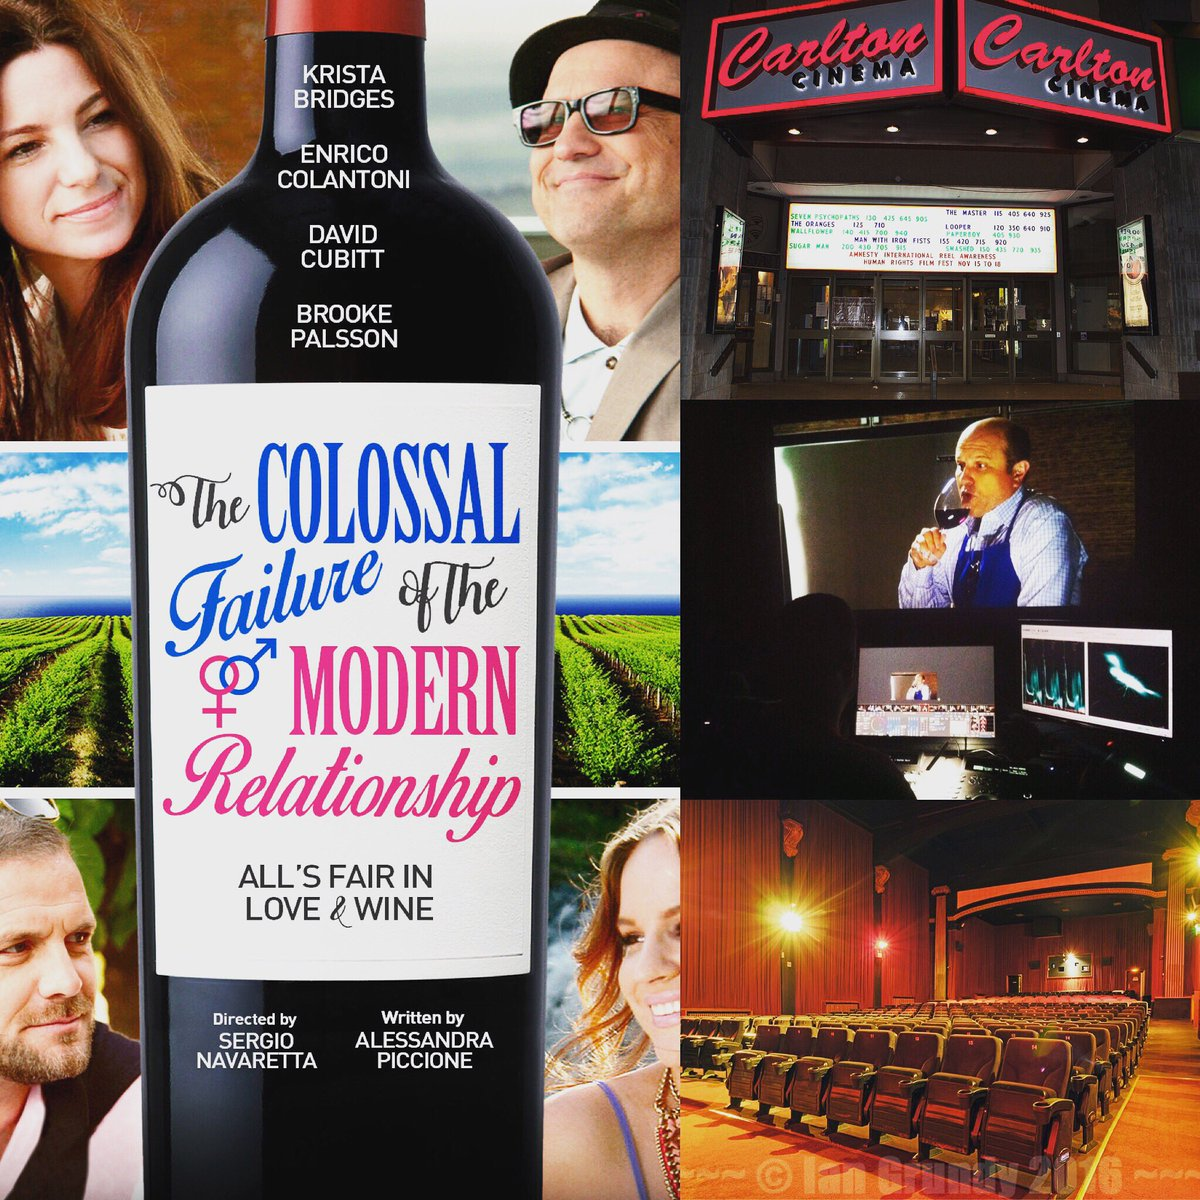 Join us tonight for a glass of wine at the opening of #ColossalMovie! @ricocolantoni @1stweekendclub @Telefilm_Canada #indiefilm #comedy <br>http://pic.twitter.com/YRJN3t8IeV